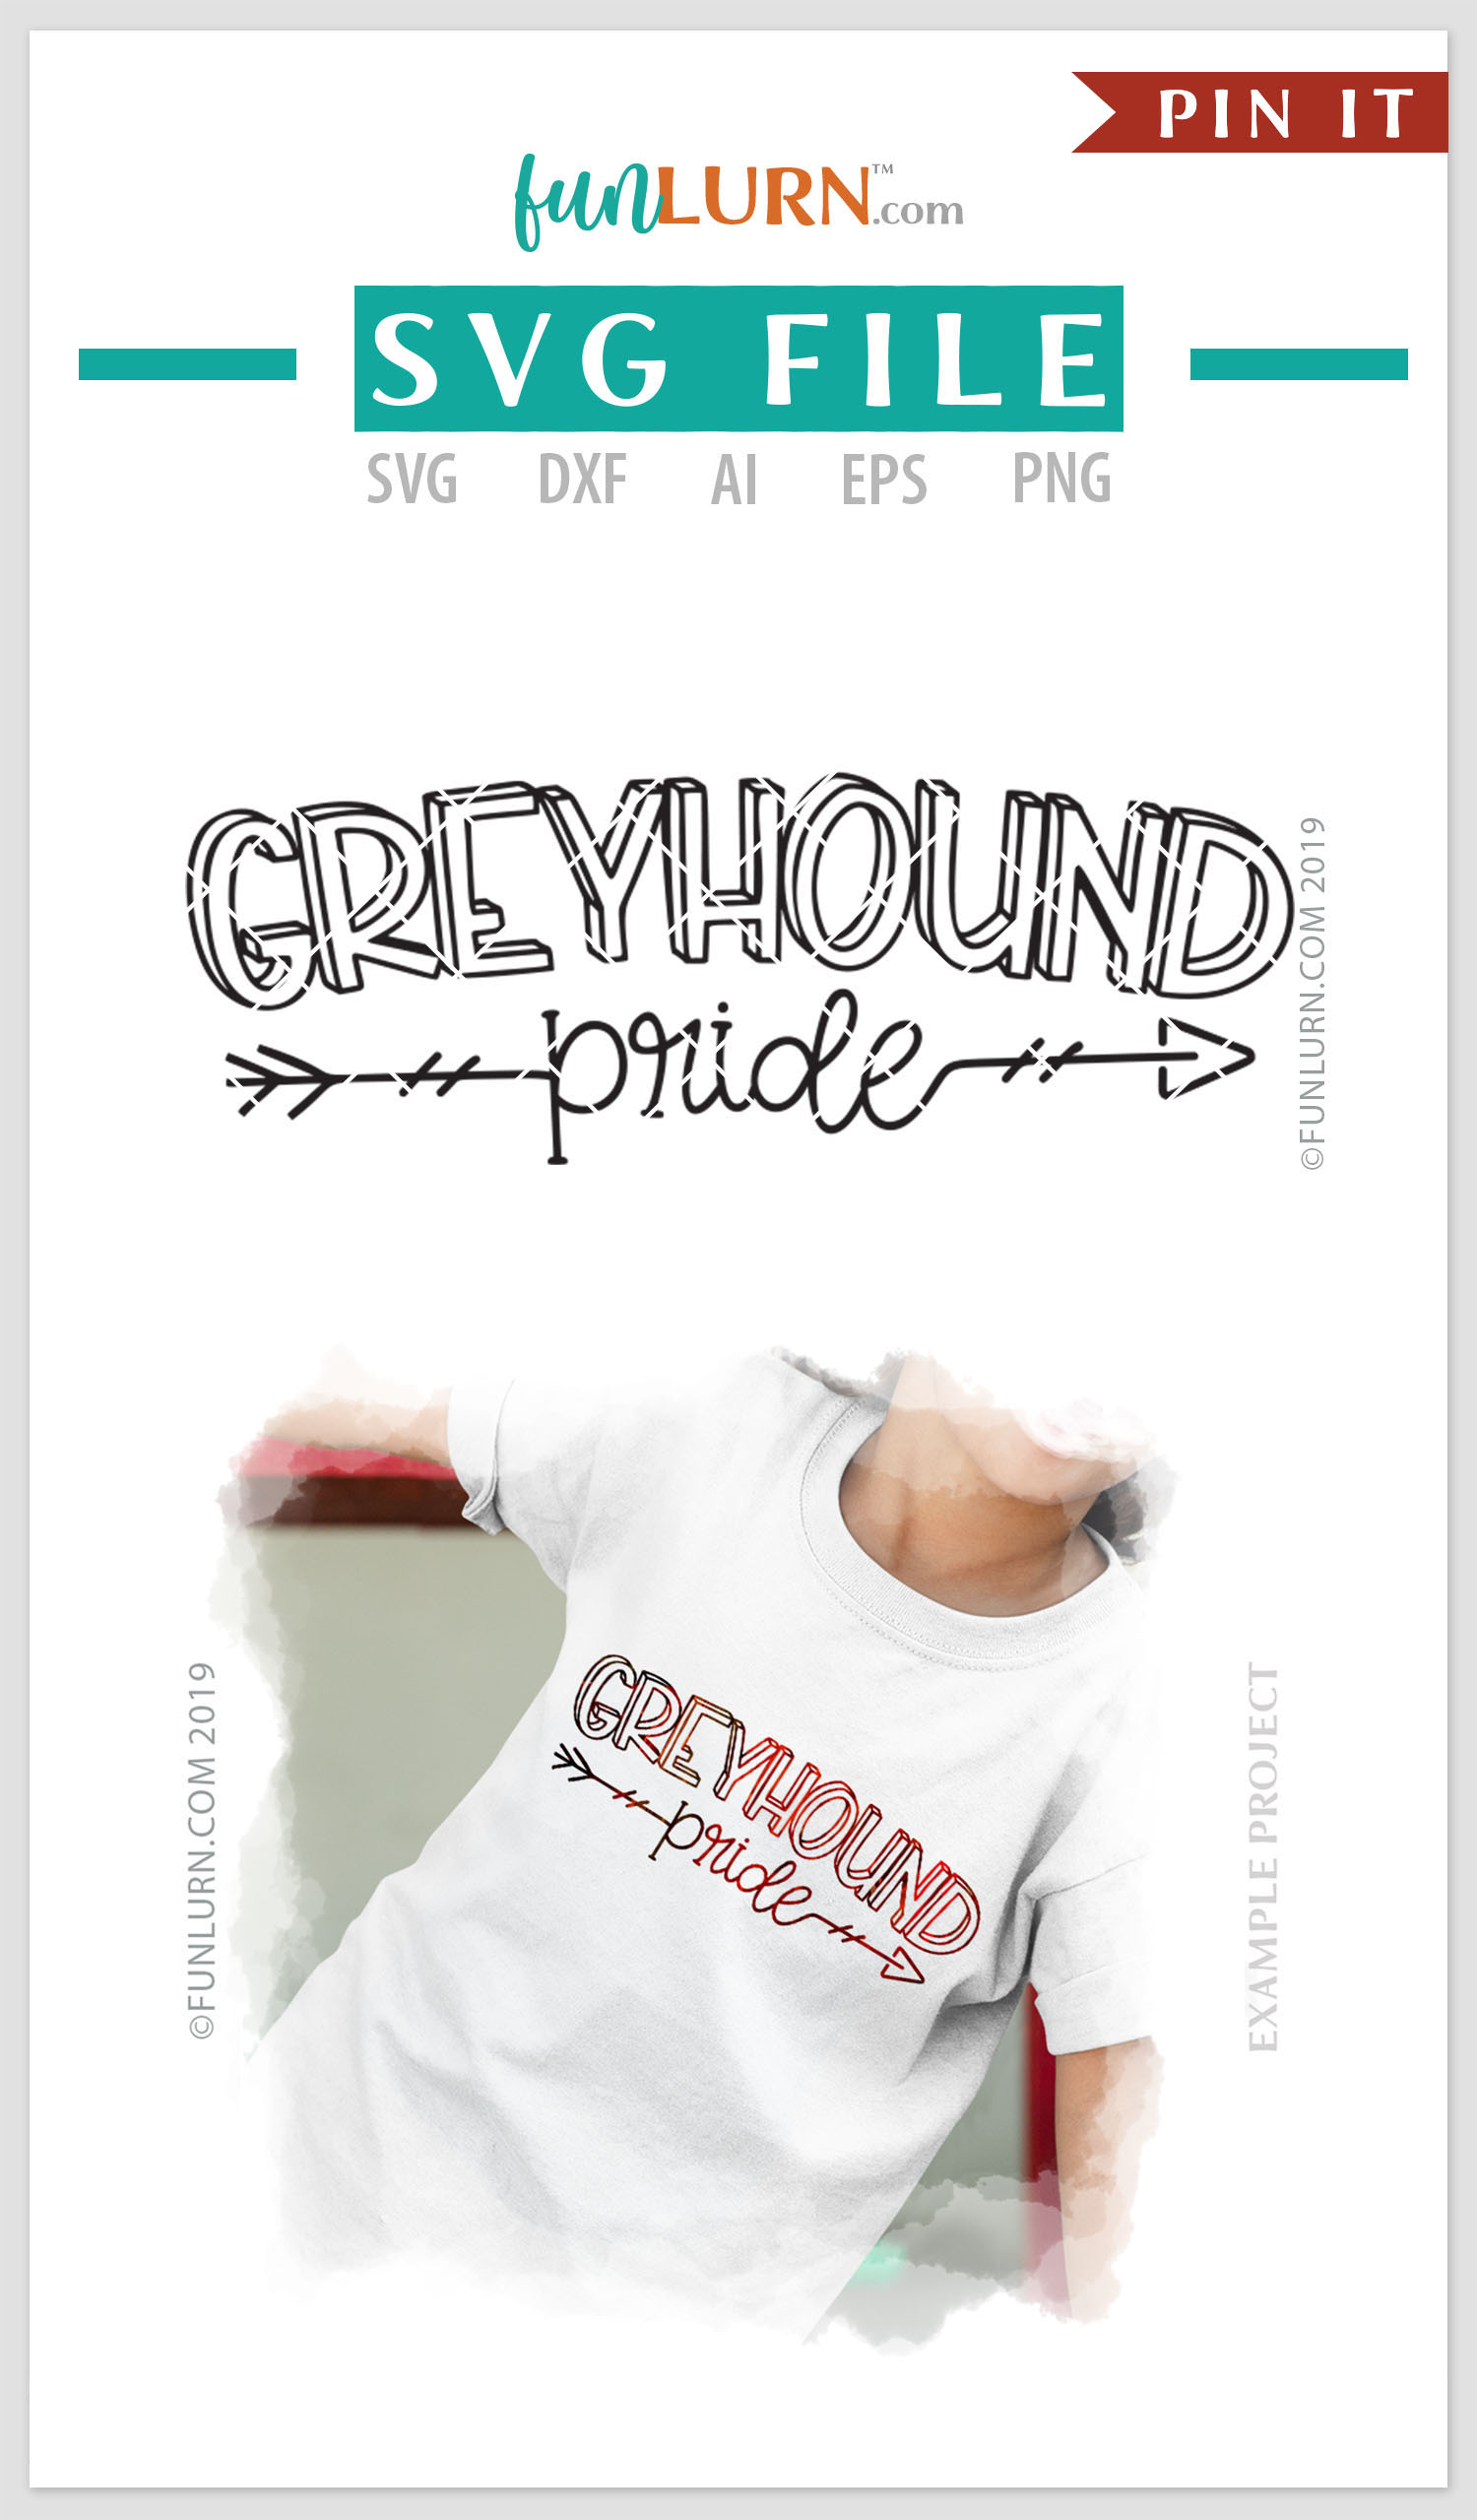 Greyhound Pride Team SVG Cut File example image 4